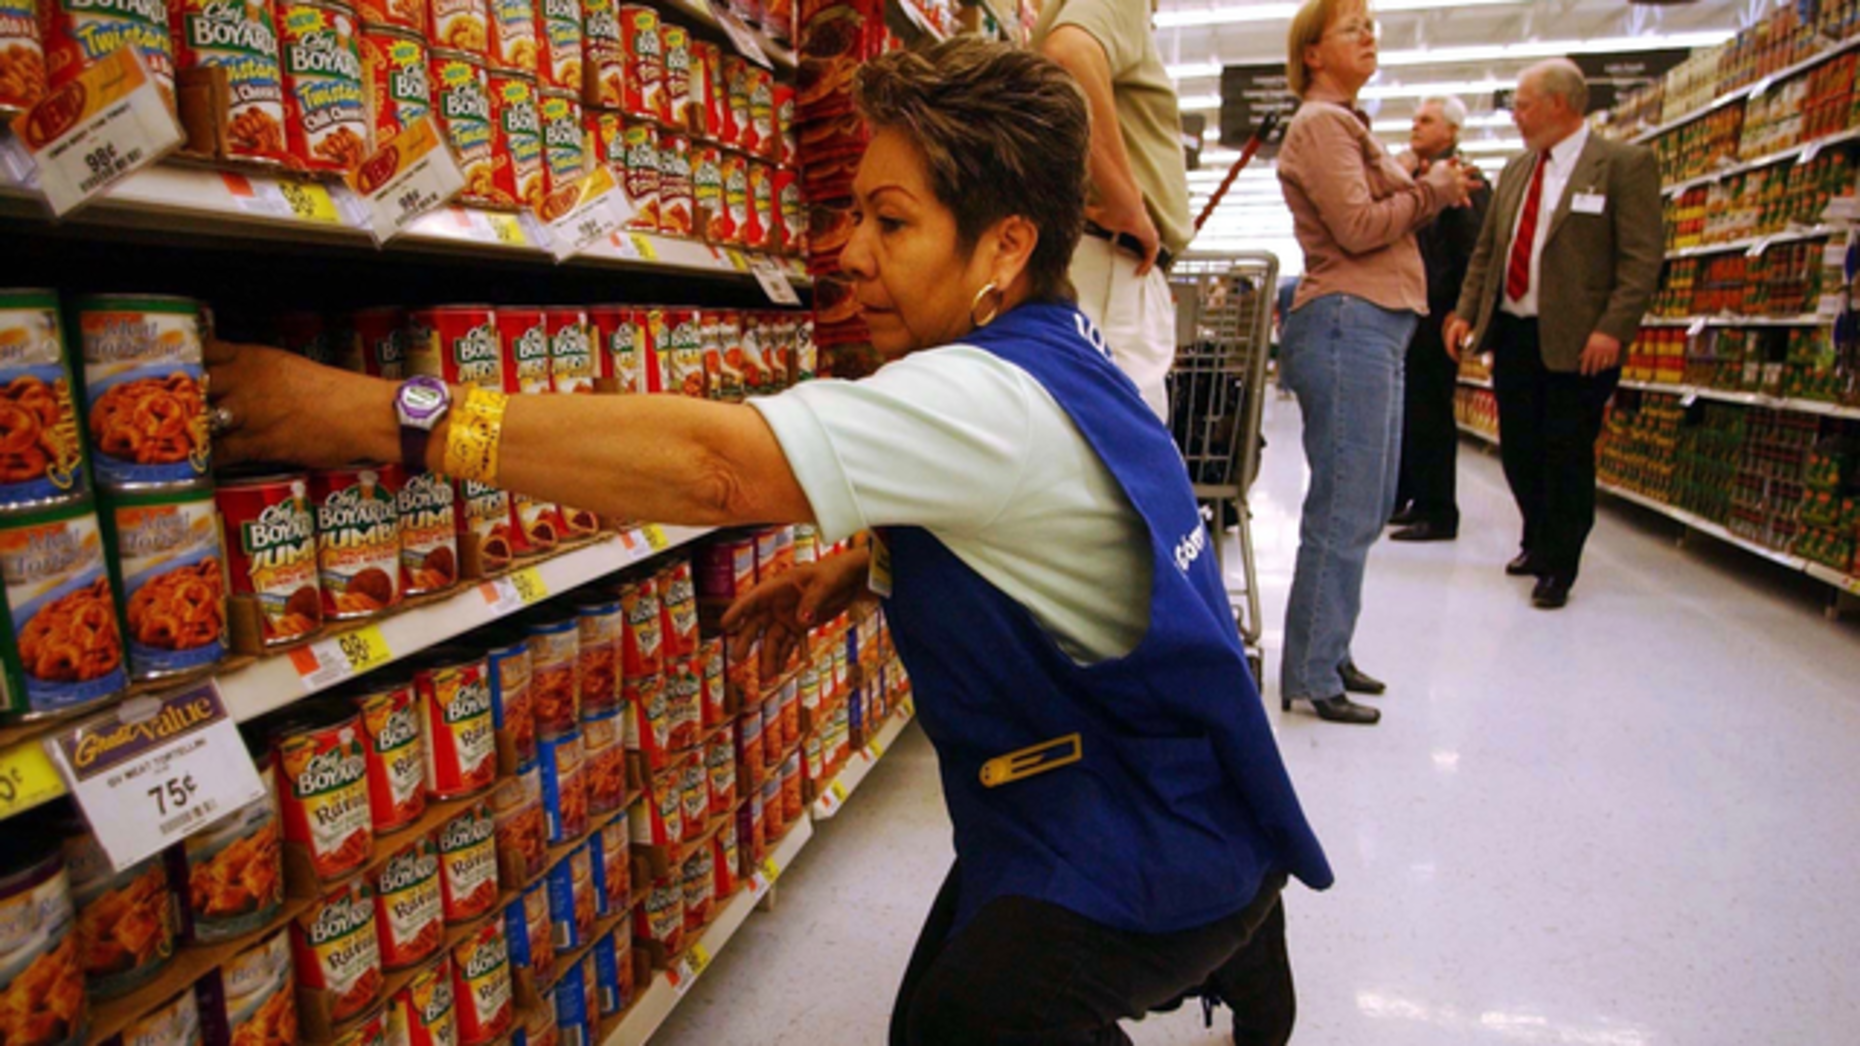 A Walmart employee restocking shelves. Photo by Bloomberg.